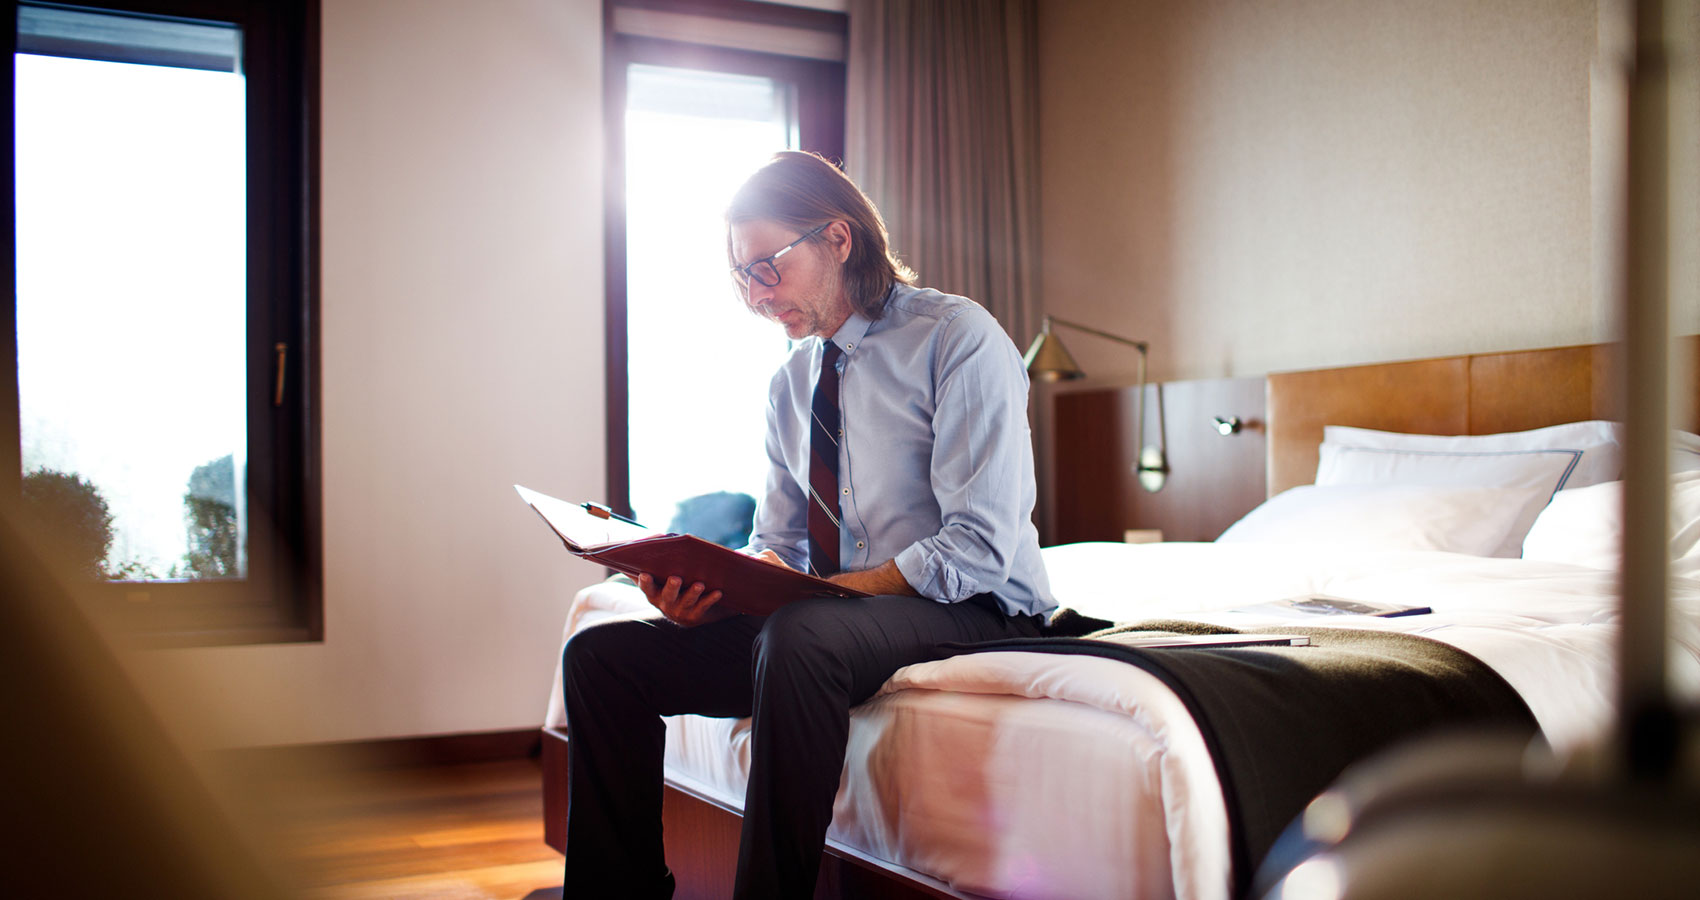 a man reads a book alone in a hotel room